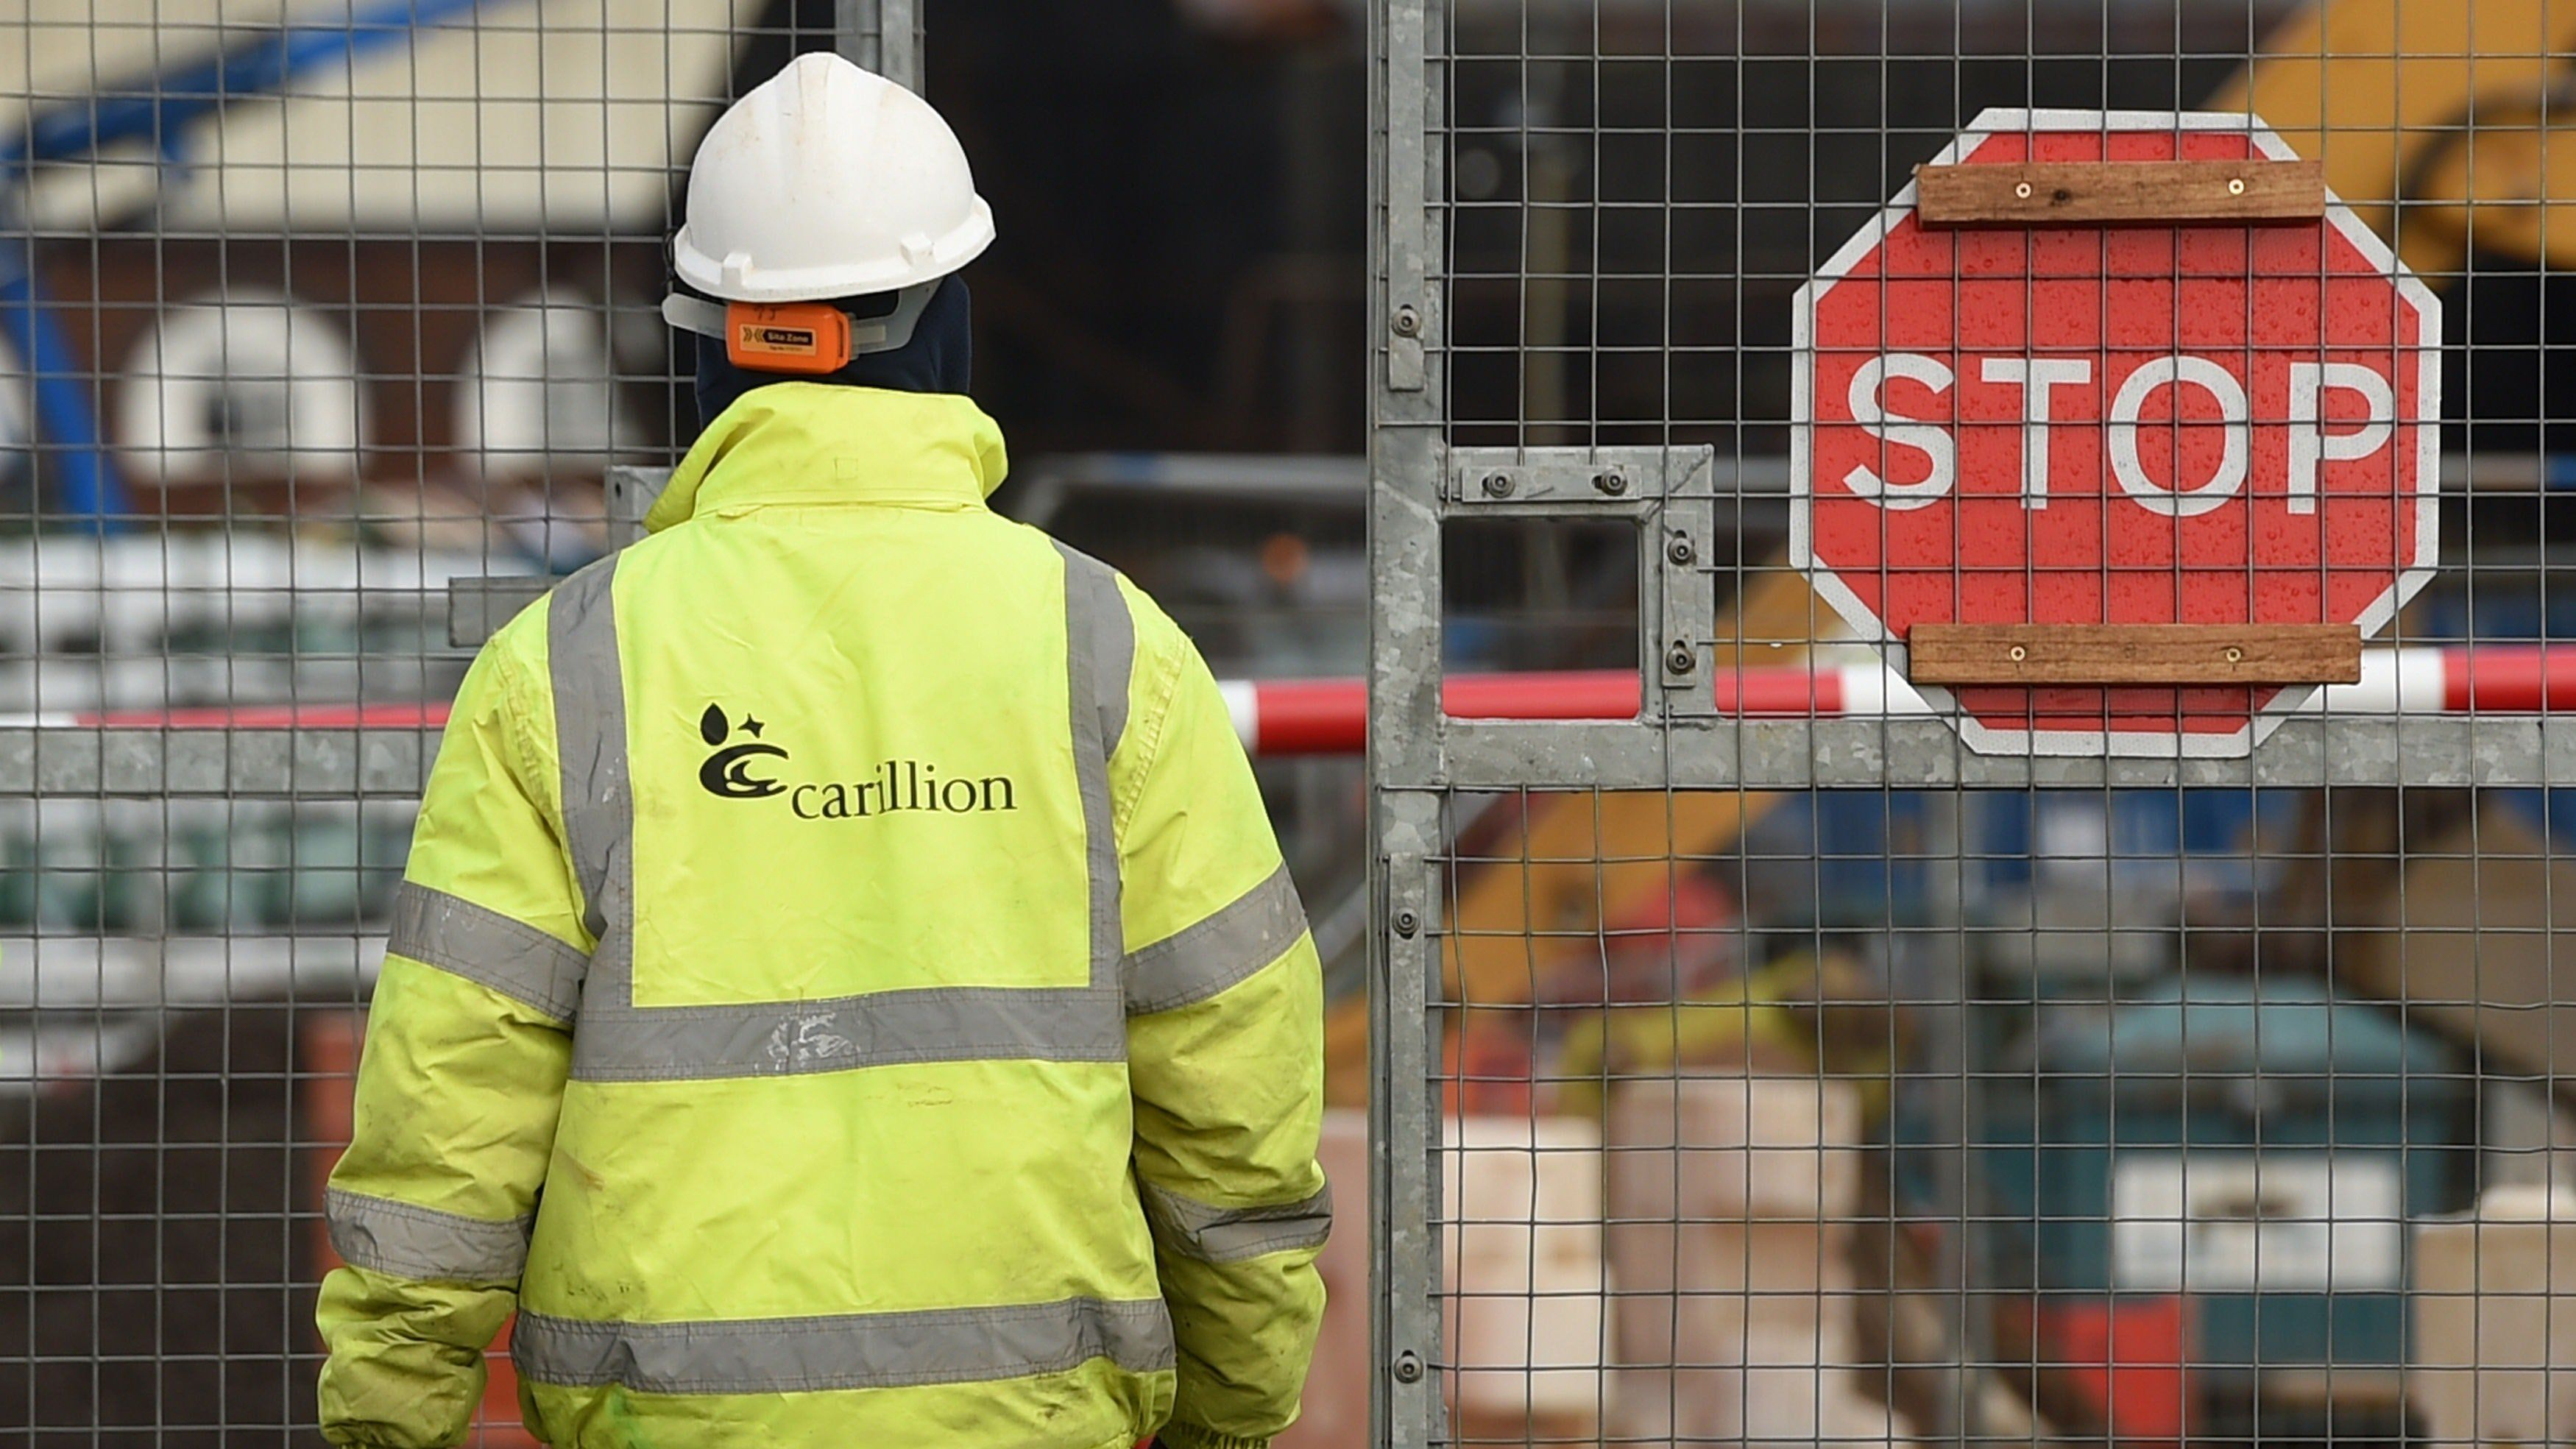 A Year Since Carillion's Collapse, And The NHS Faces A Multi-Million Pound